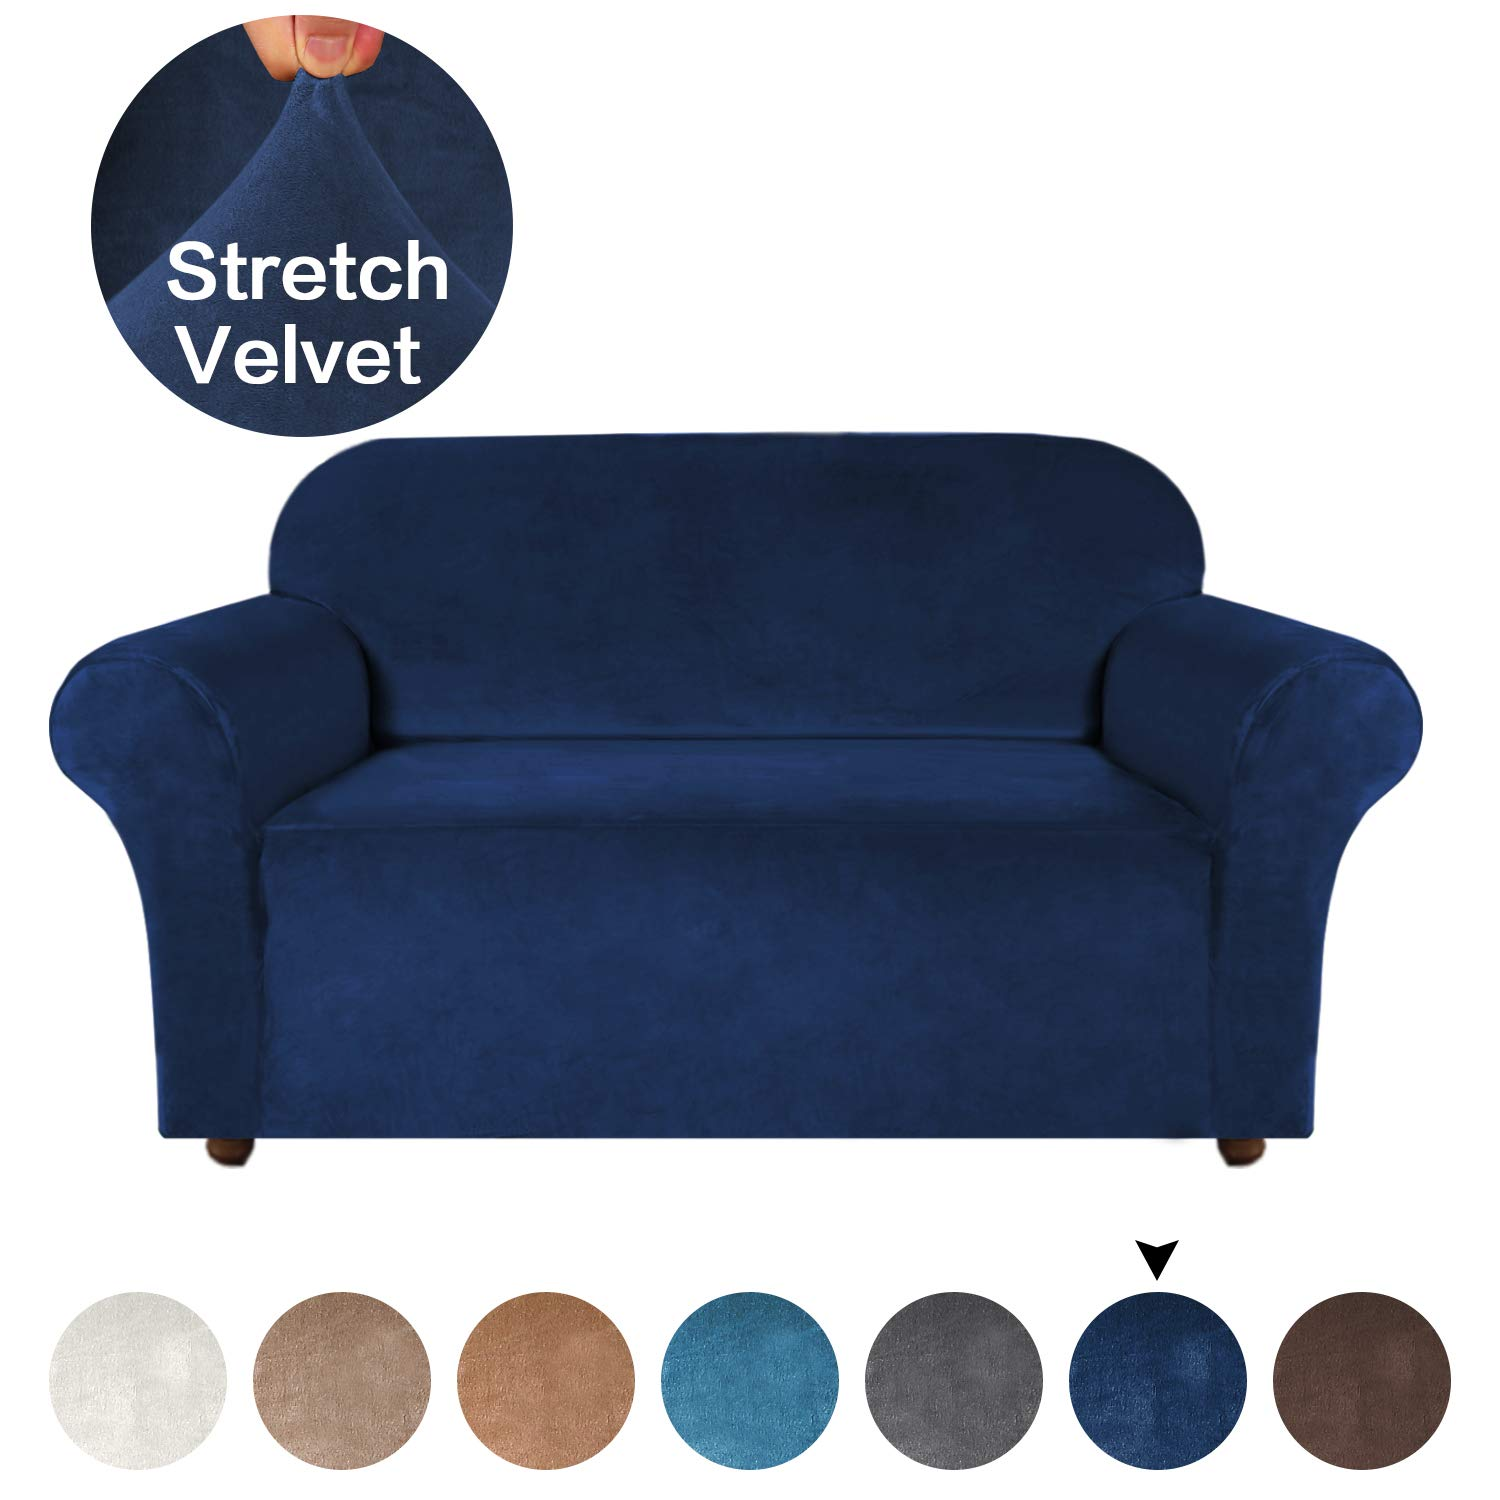 Plush Sofa Protector With Anti-Slip Foams, Machine Washable Covers for 2 Seater Couch Cover (Loveseat, Navy)